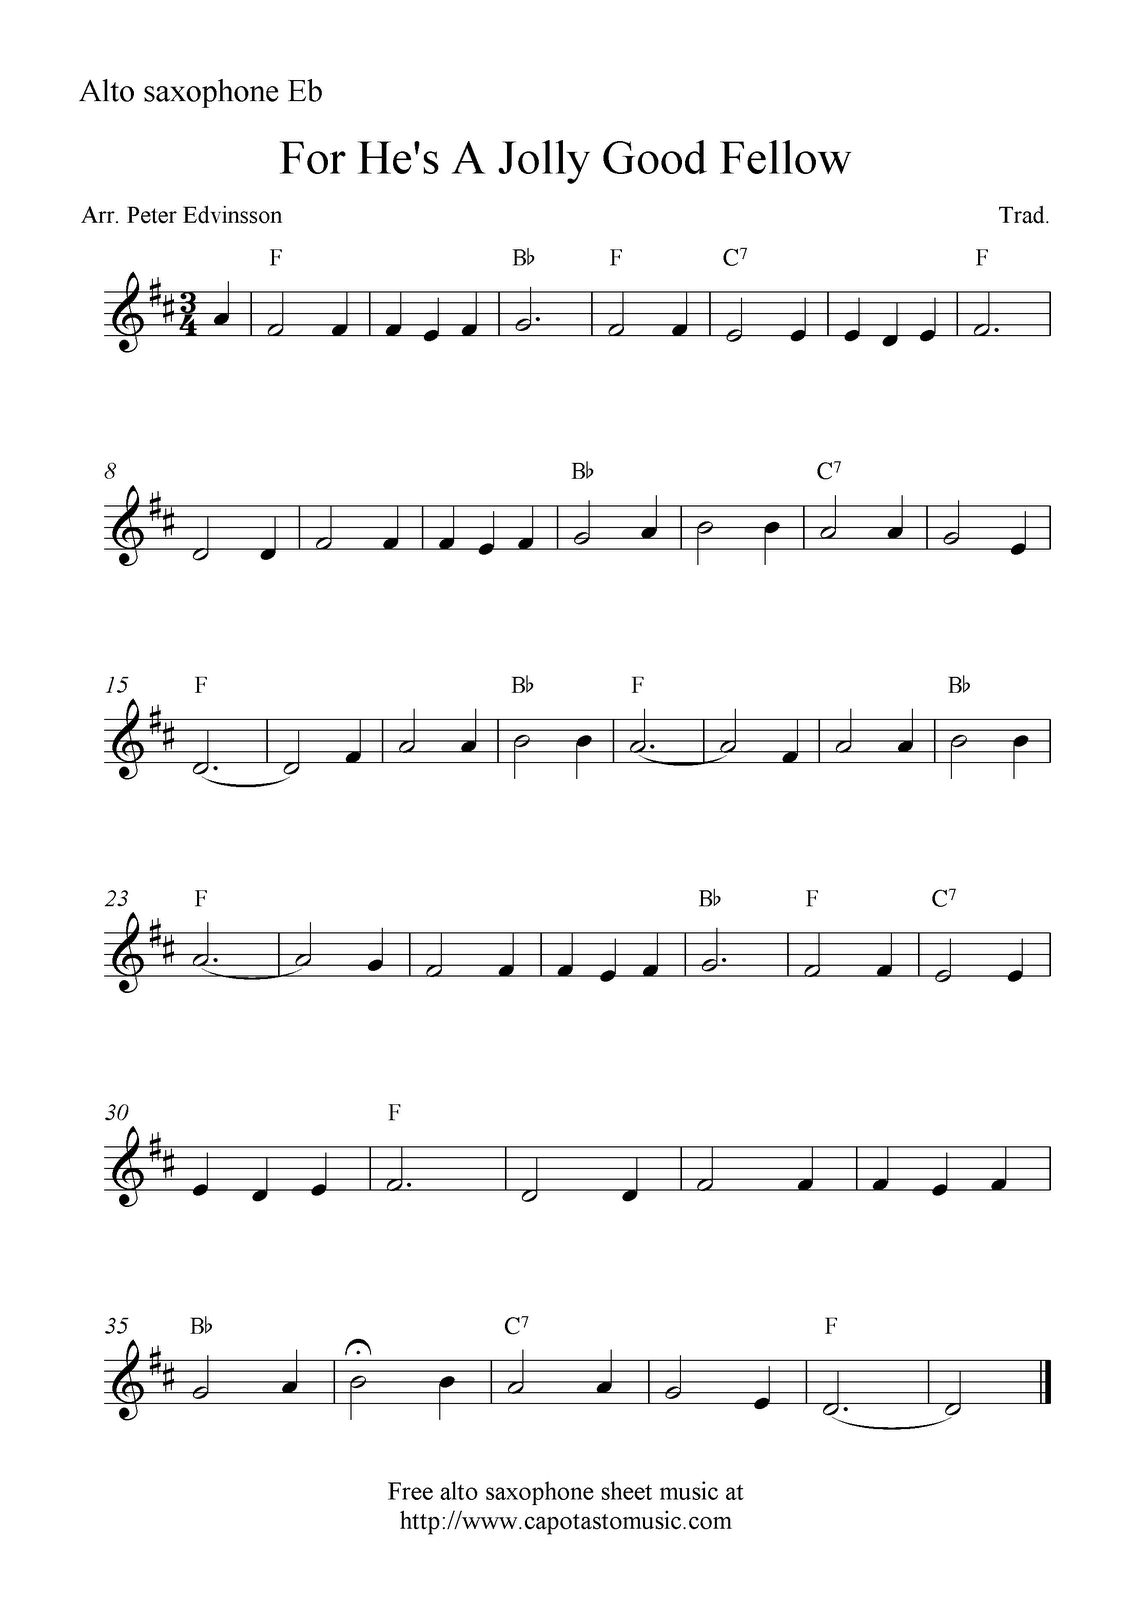 Saxophone Sheet Music For Beginners   Sheet Music Scores: For He's A - Free Printable Alto Saxophone Sheet Music